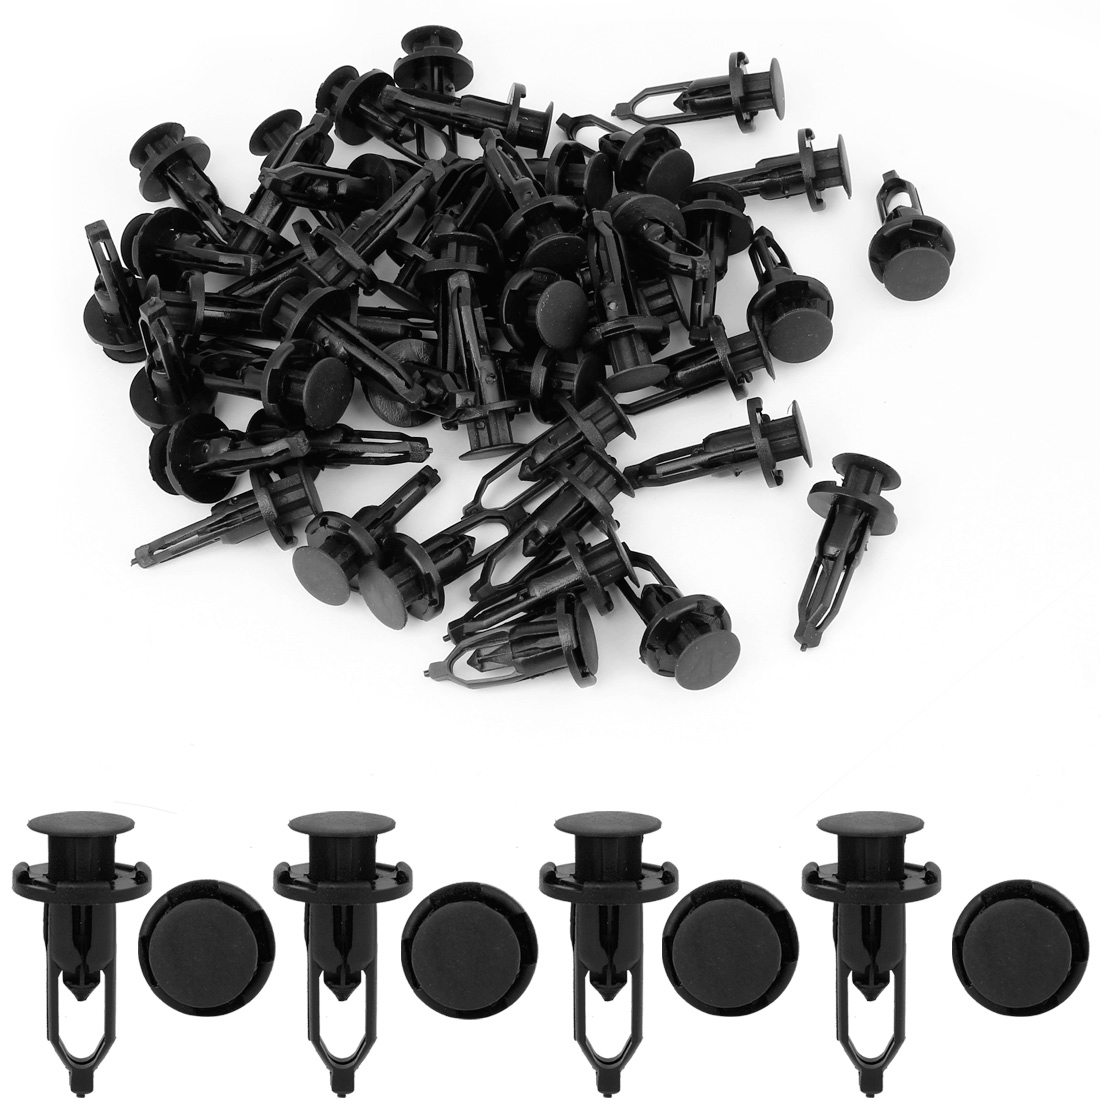 50-Pcs-9mm-Hole-Dia-Plastic-Push-Fastener-Rivets-Clips-Black-for-Toyota